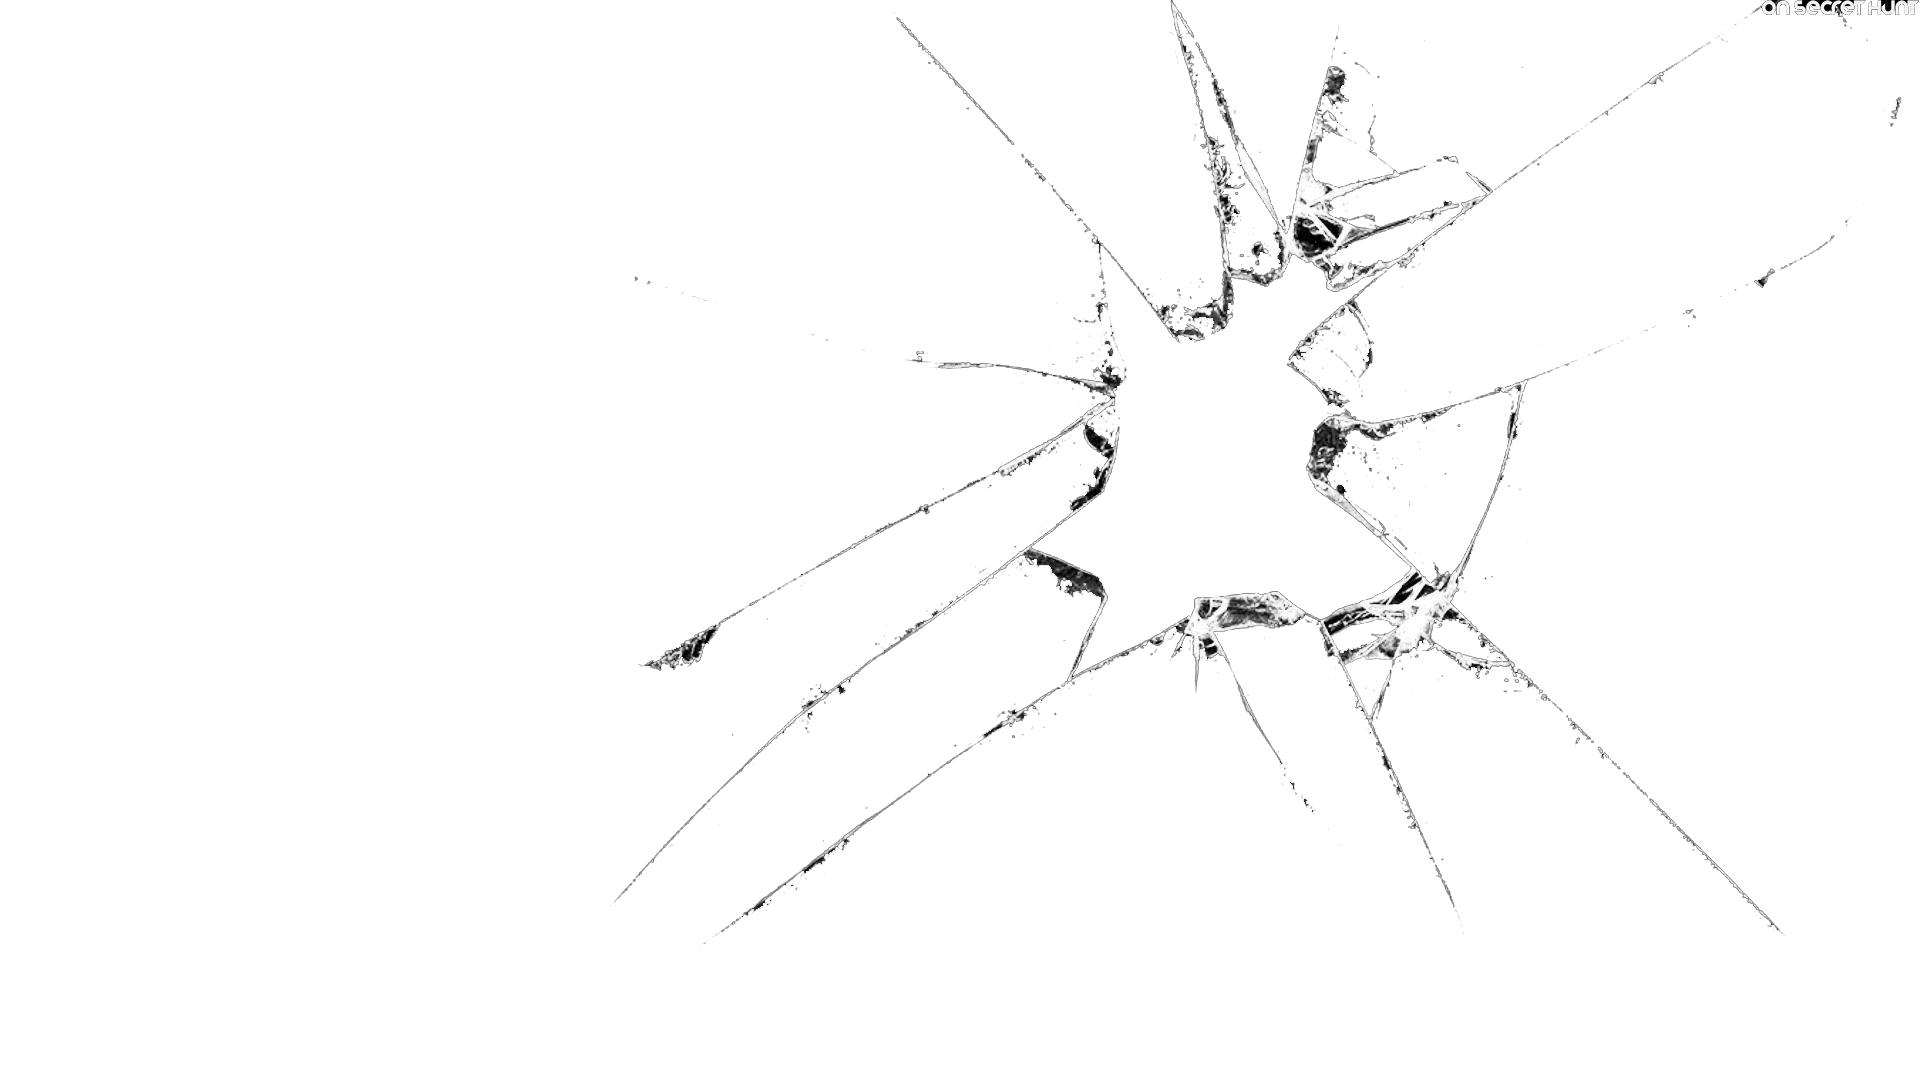 Shattered Glass Transparent Png | www.pixshark.com ...